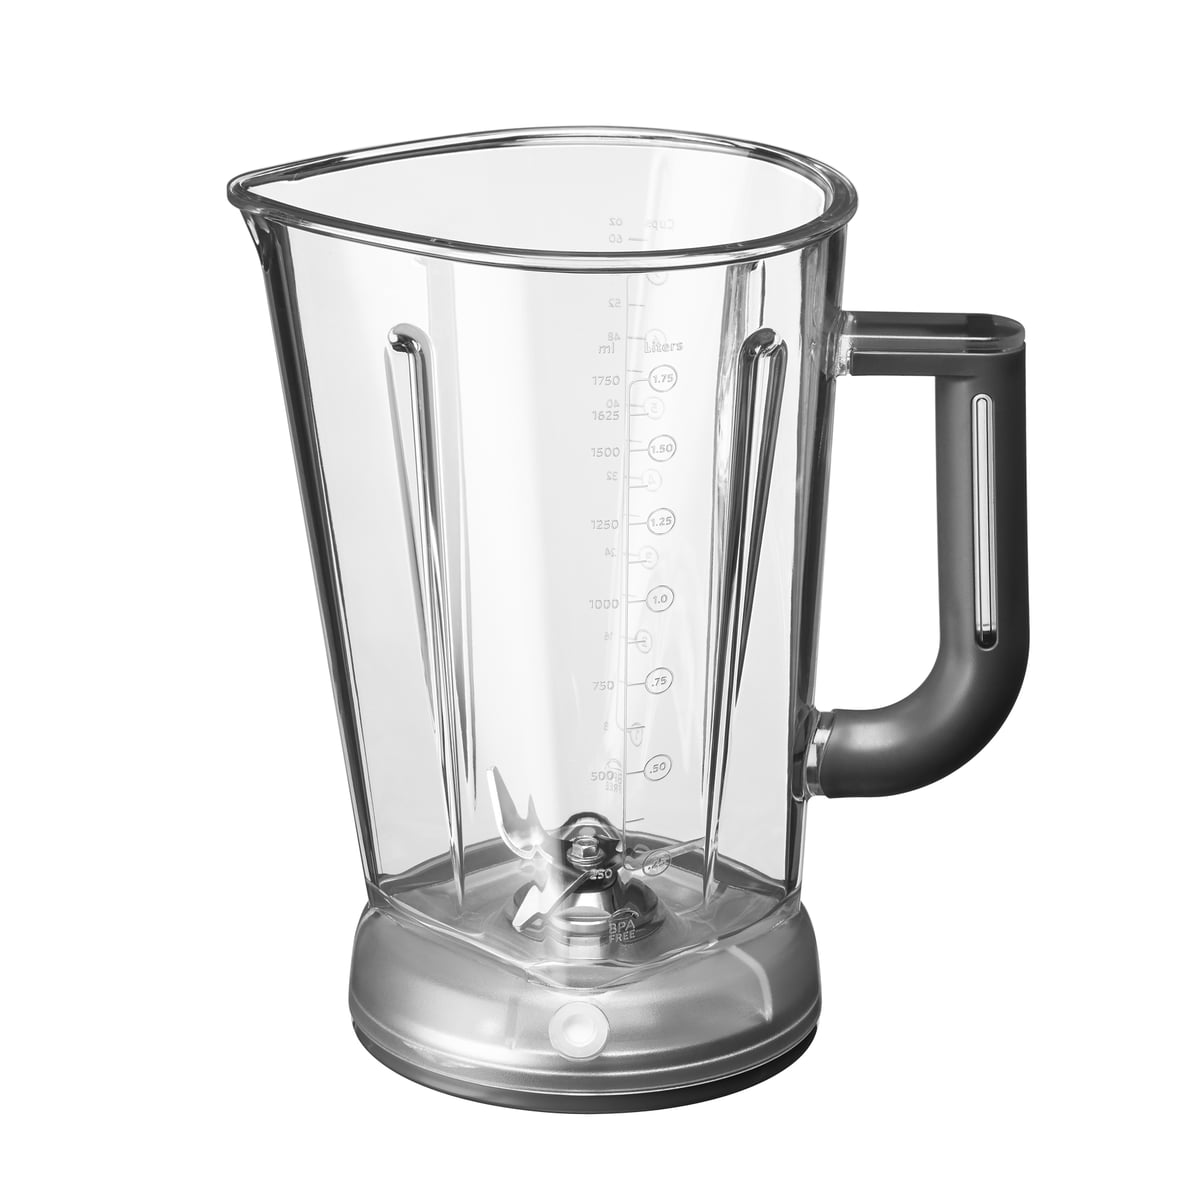 Artisan Magnetic Drive Blender By Kitchenaid